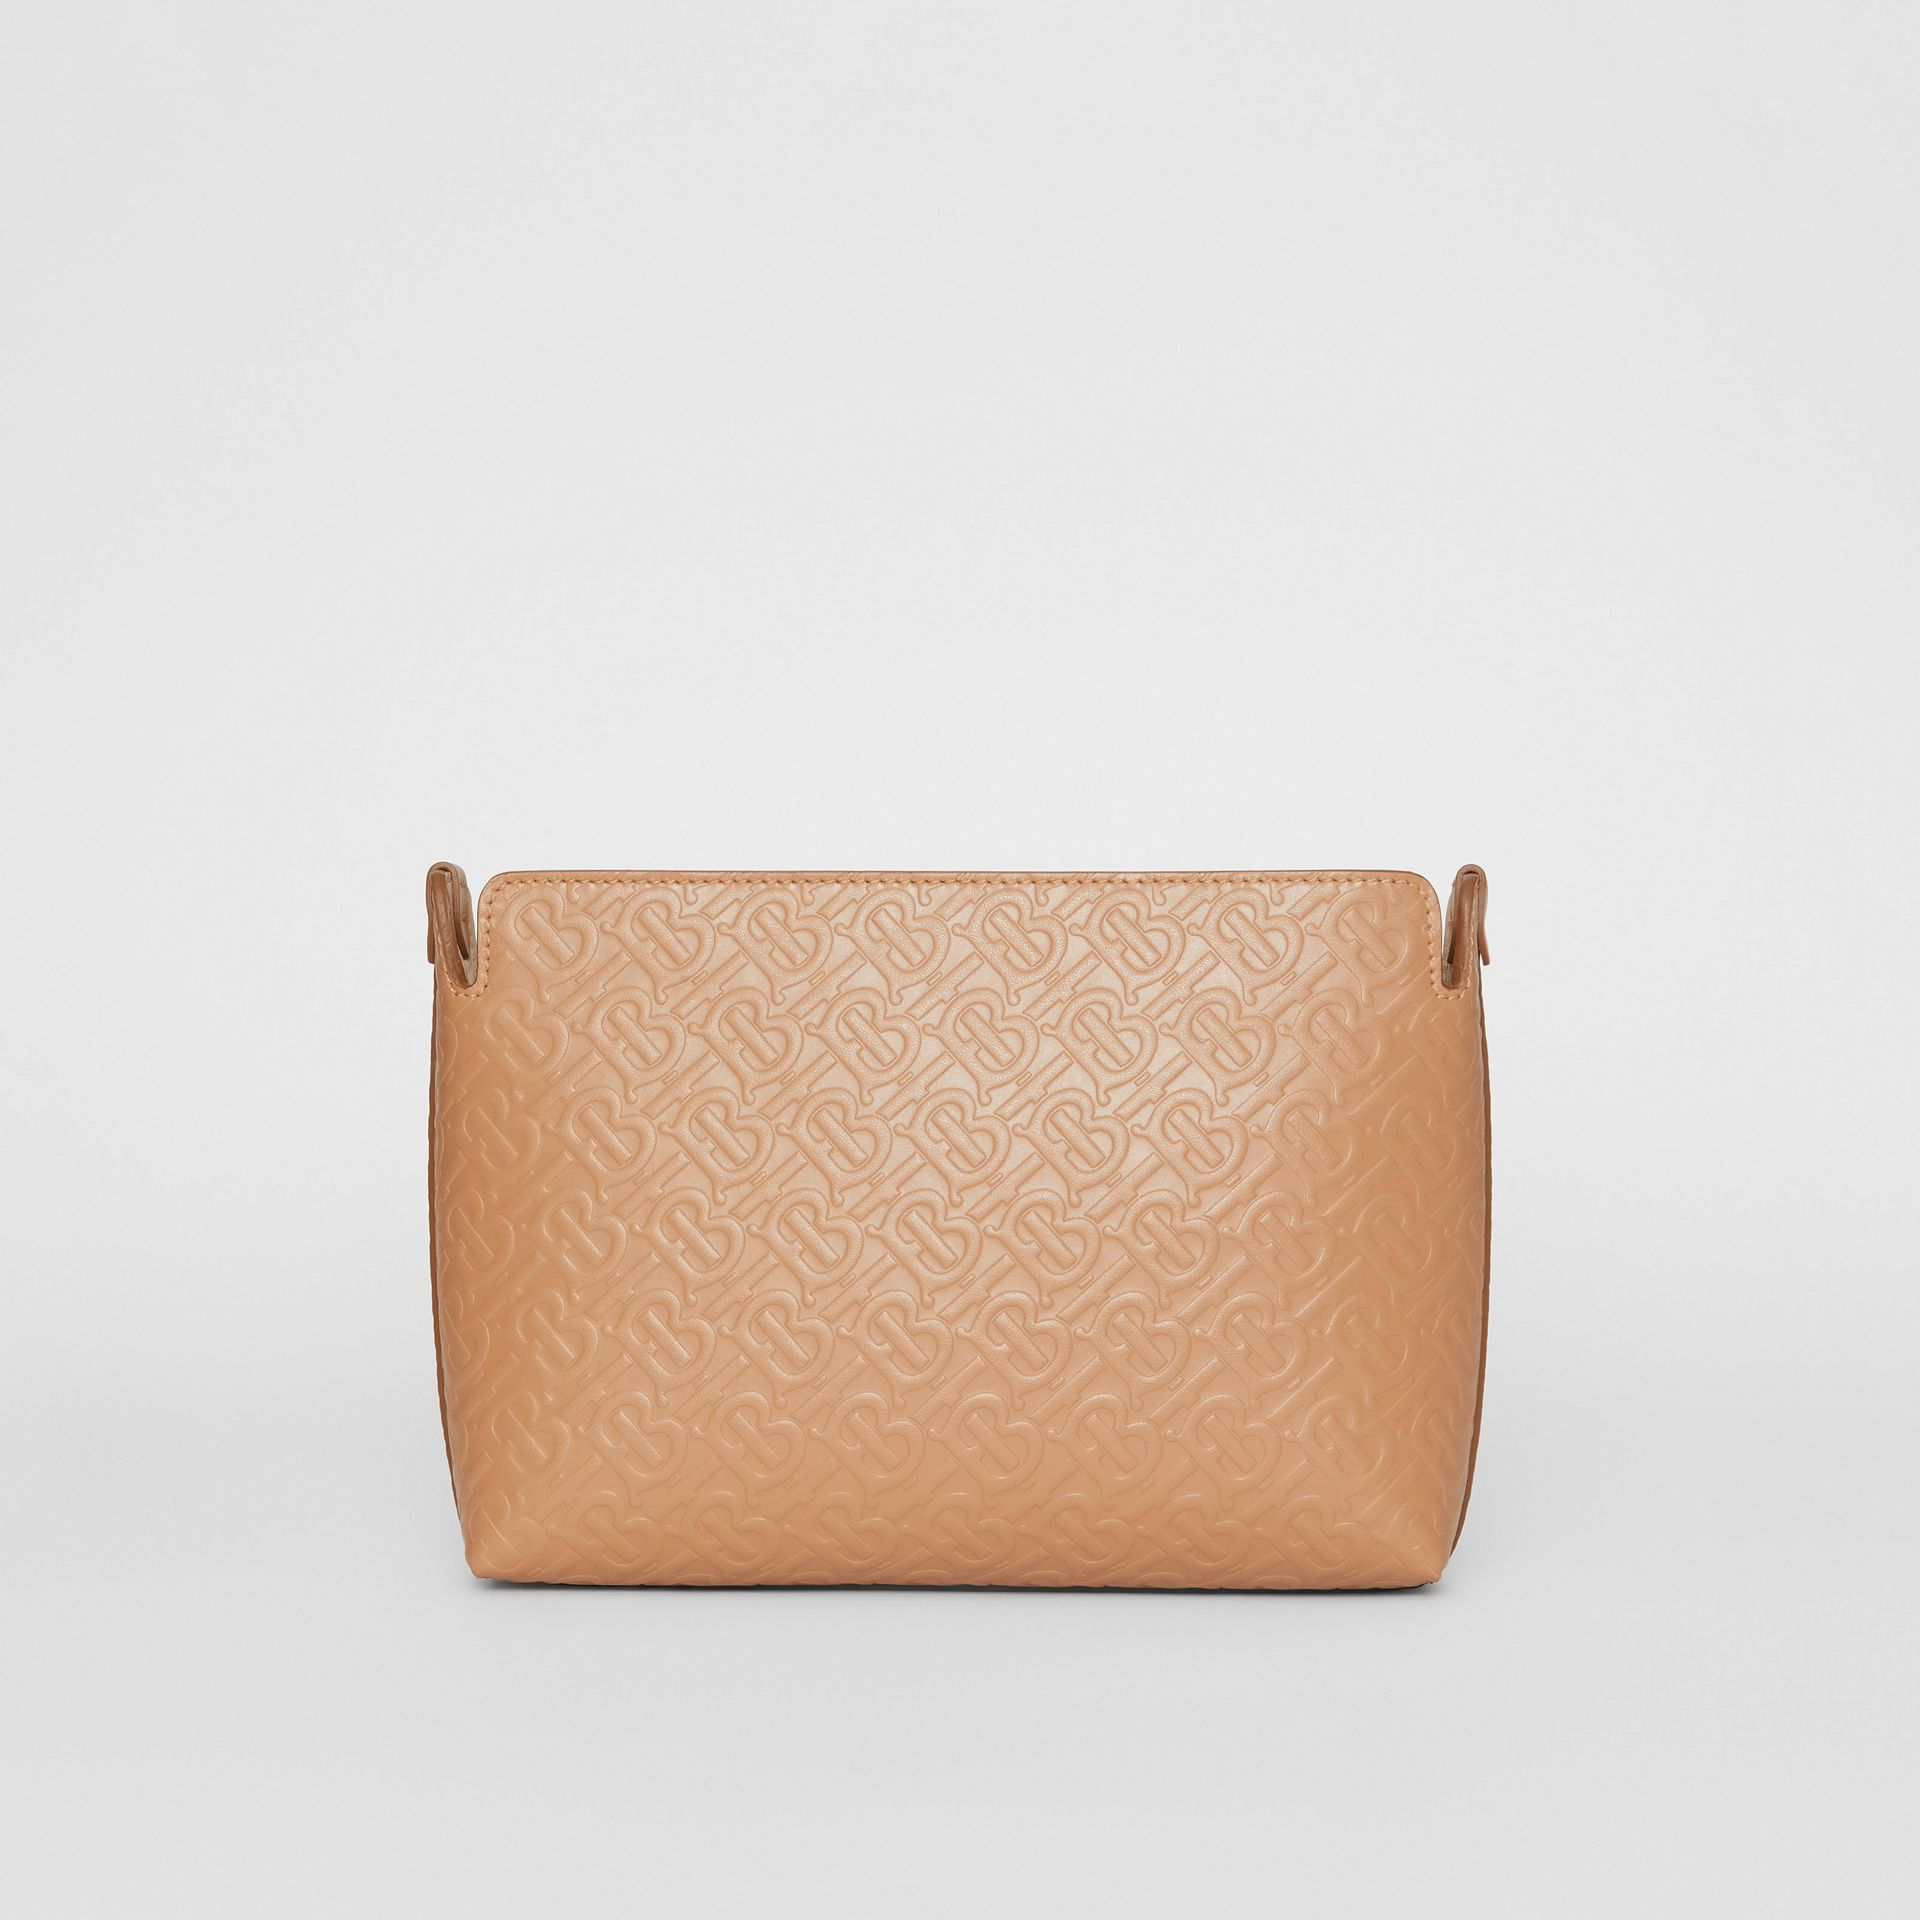 Medium Monogram Leather Clutch in Light Camel - Women | Burberry - gallery image 6